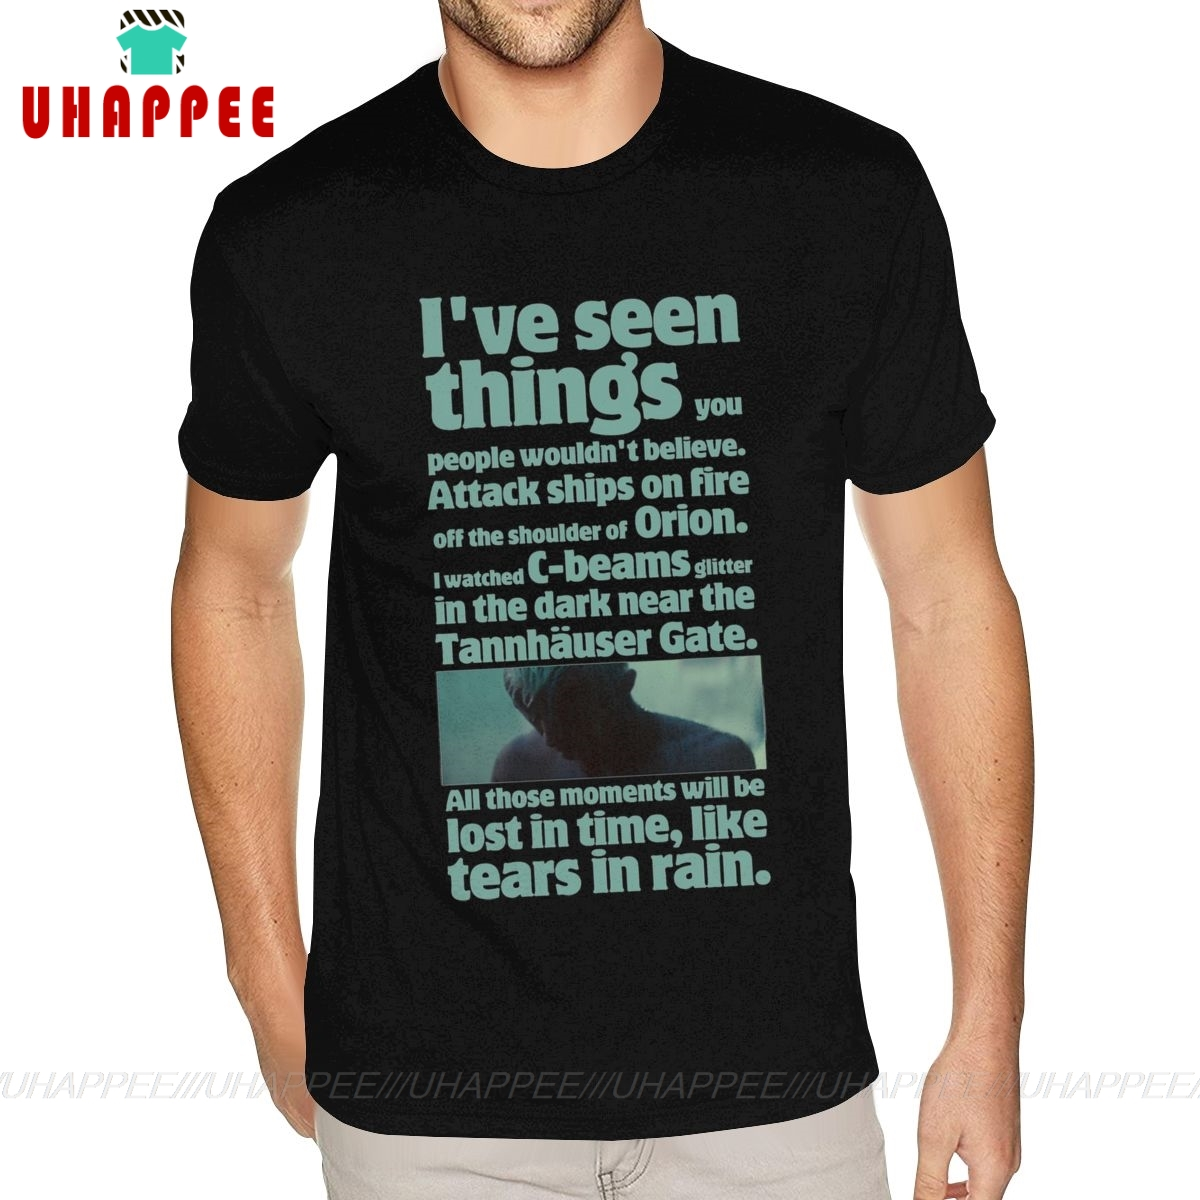 Cotton Blade Runner Like Tears In Rain Graphic T-shirts T Shirts Mens Small Size Black Shirts